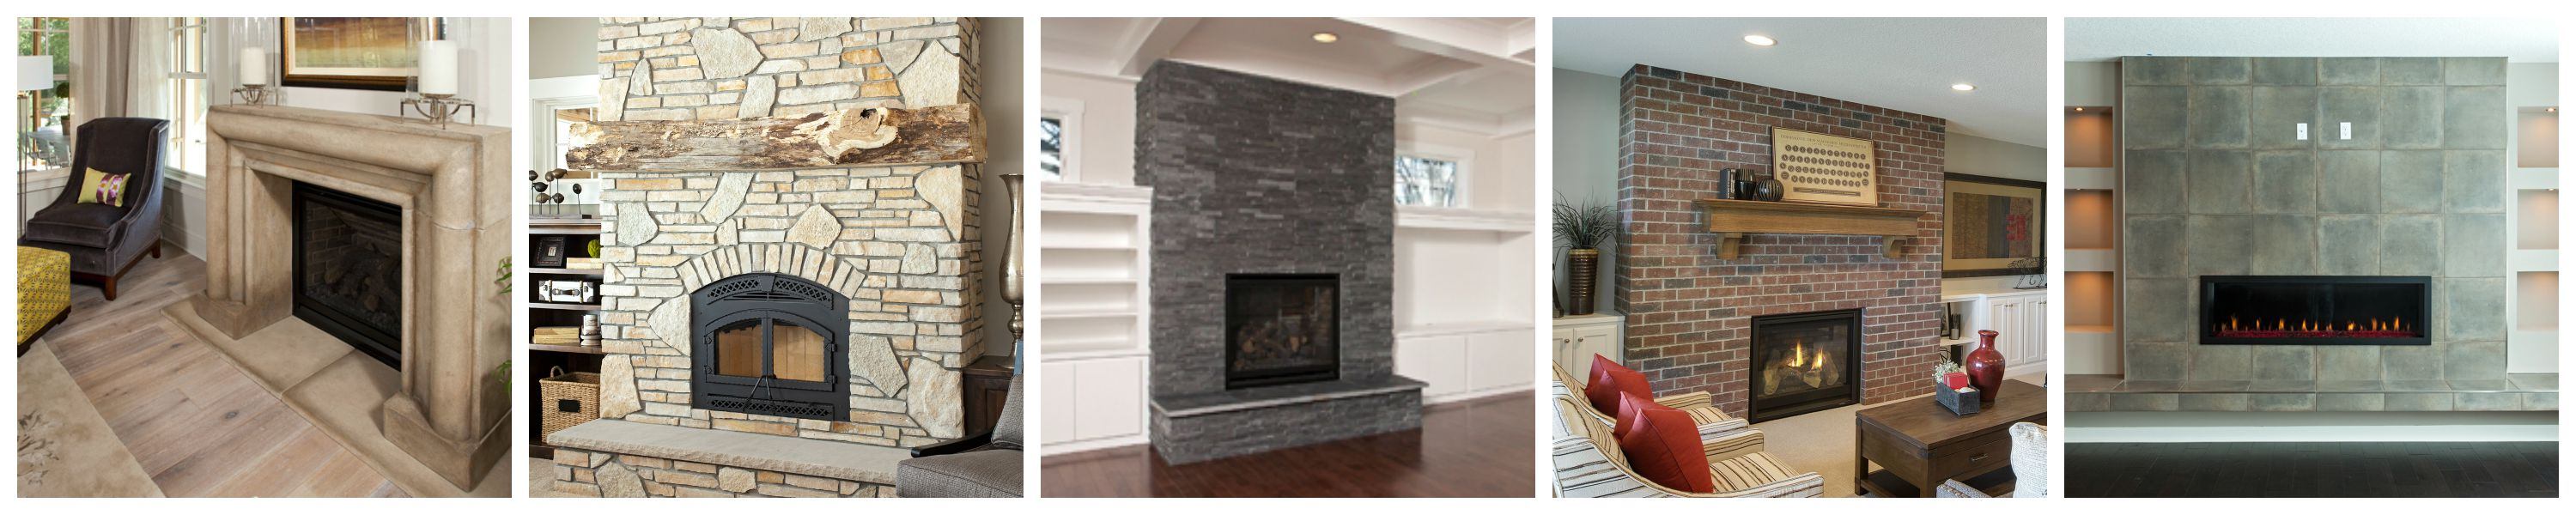 Fireplace surrounds homes by tradition for Fireplace material options